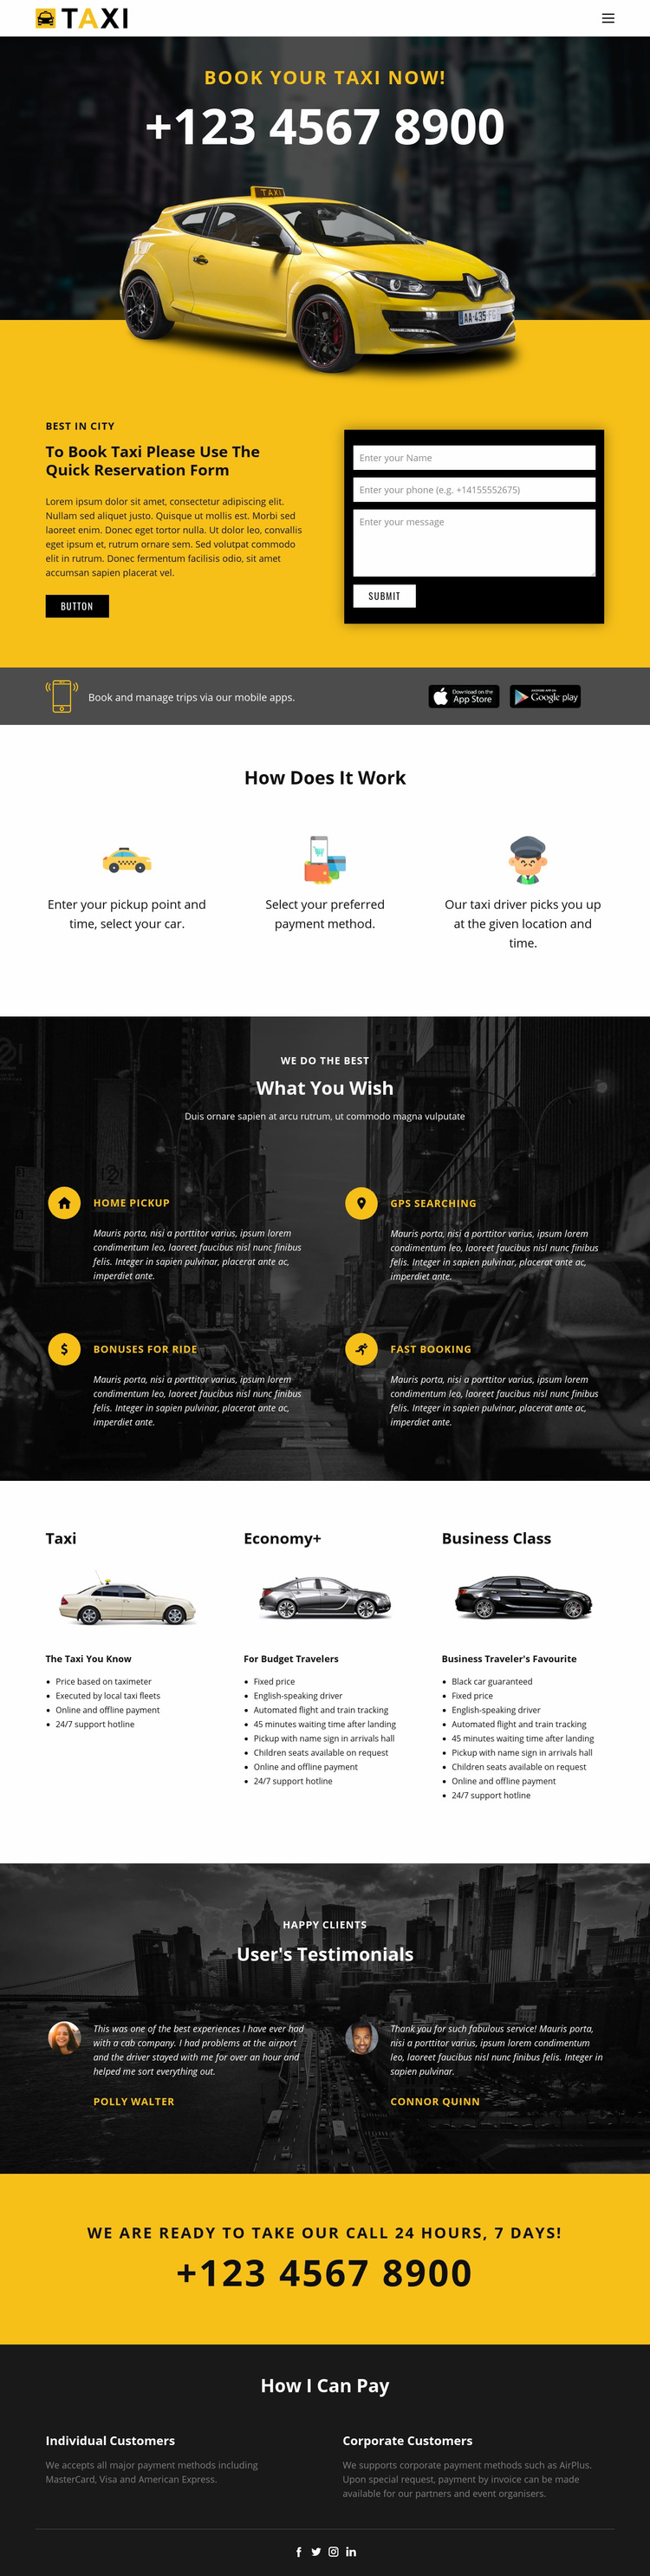 Fastest taxi cars Web Page Designer